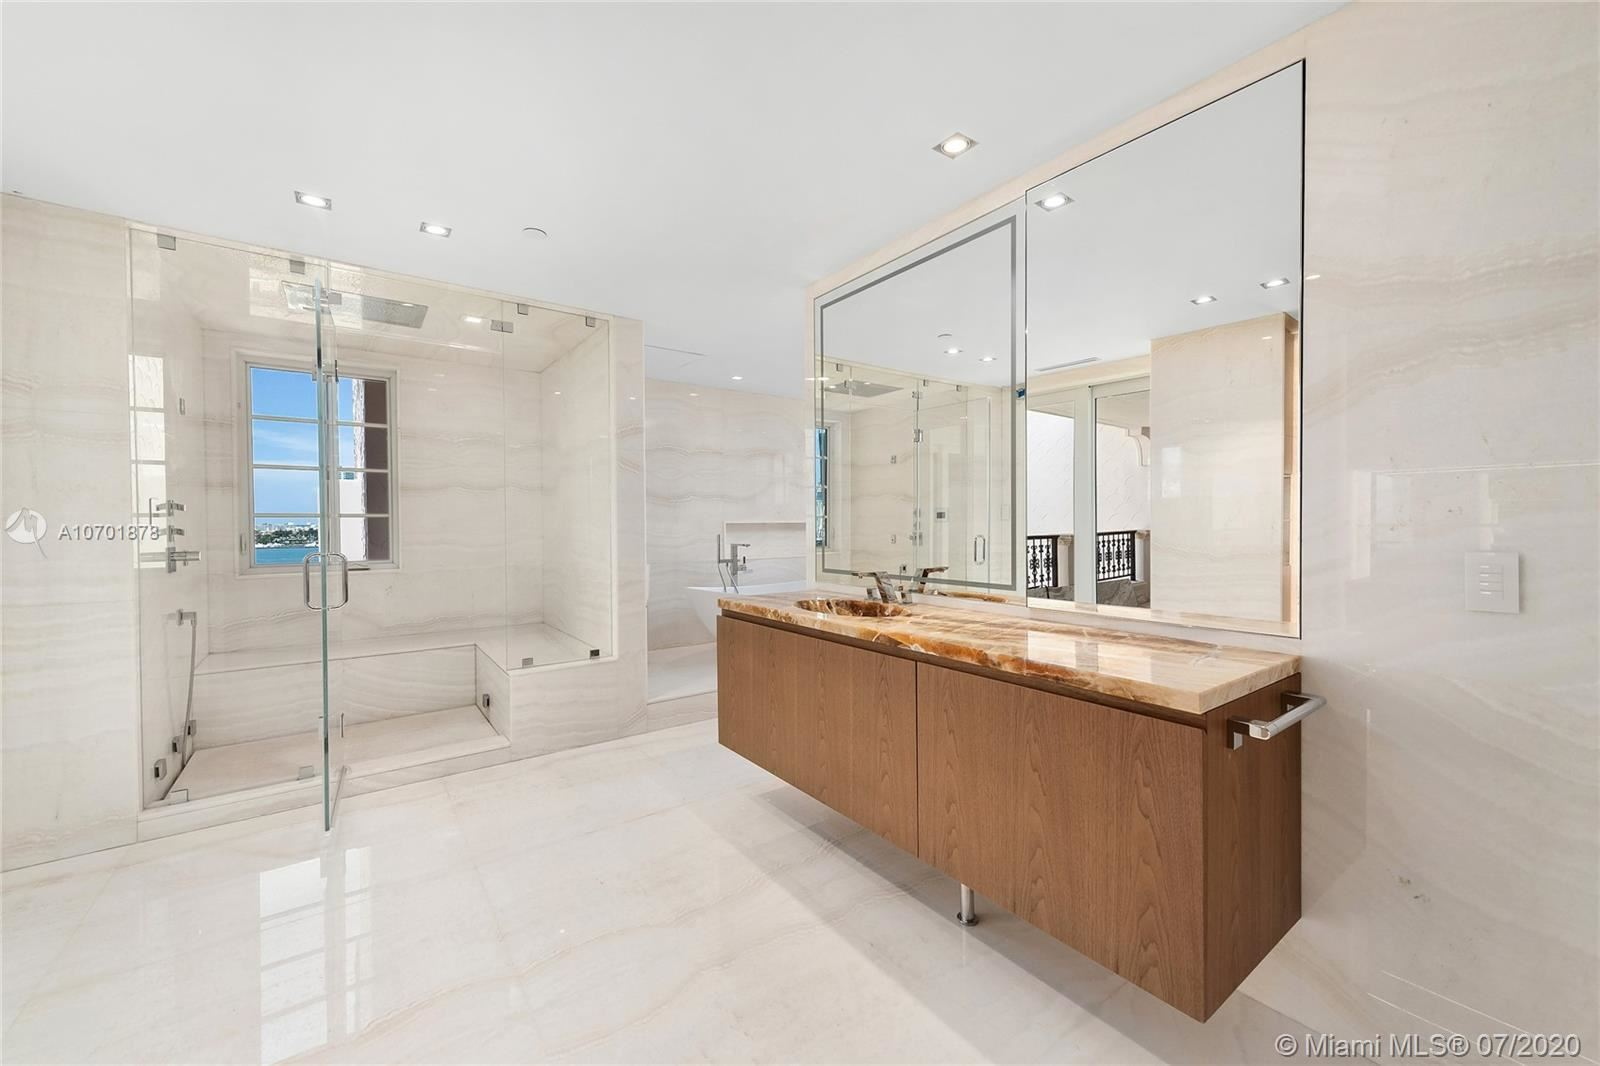 Photo 35 of Listing MLS a10701878 in 5292 Fisher Island Dr #5292 Miami FL 33109